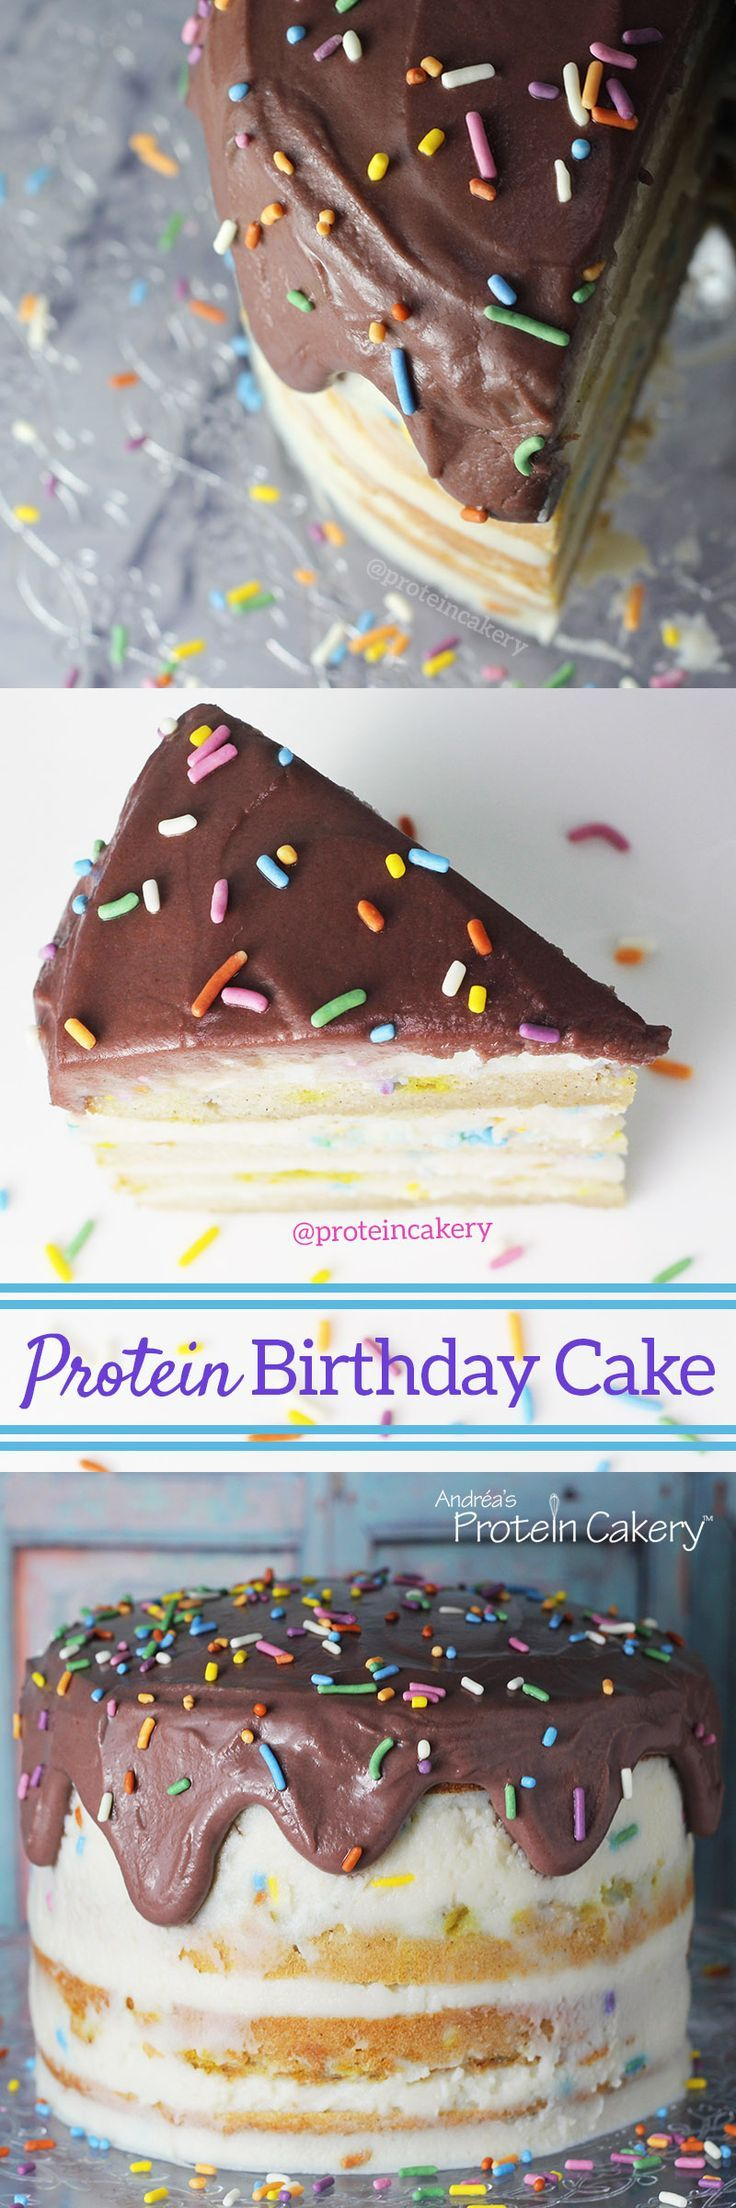 Swell Protein Birthday Cake With All Natural Sprinkles Gluten Free Funny Birthday Cards Online Chimdamsfinfo